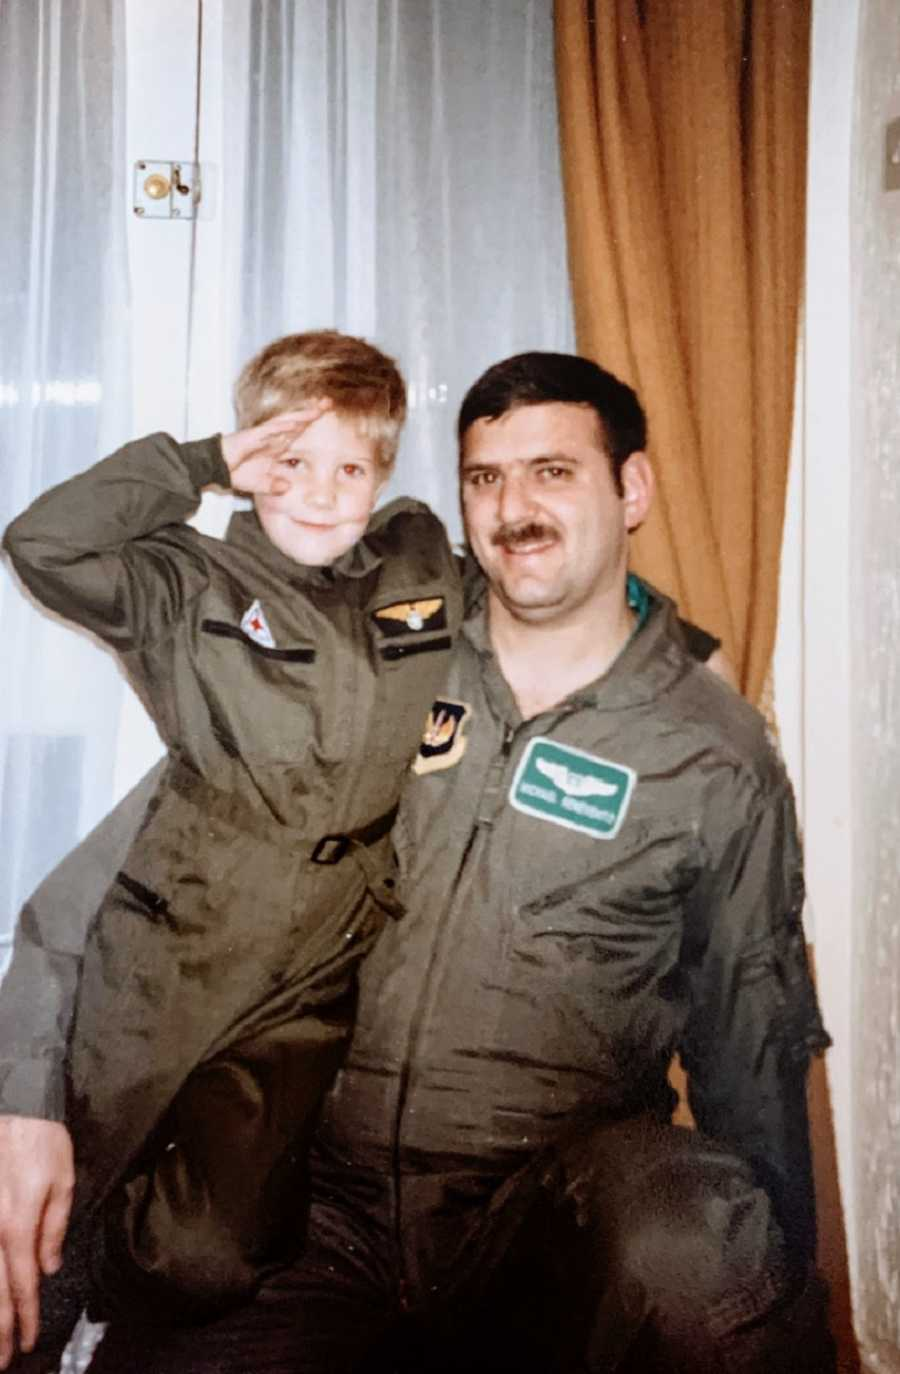 A man in a military uniform stands with a young boy